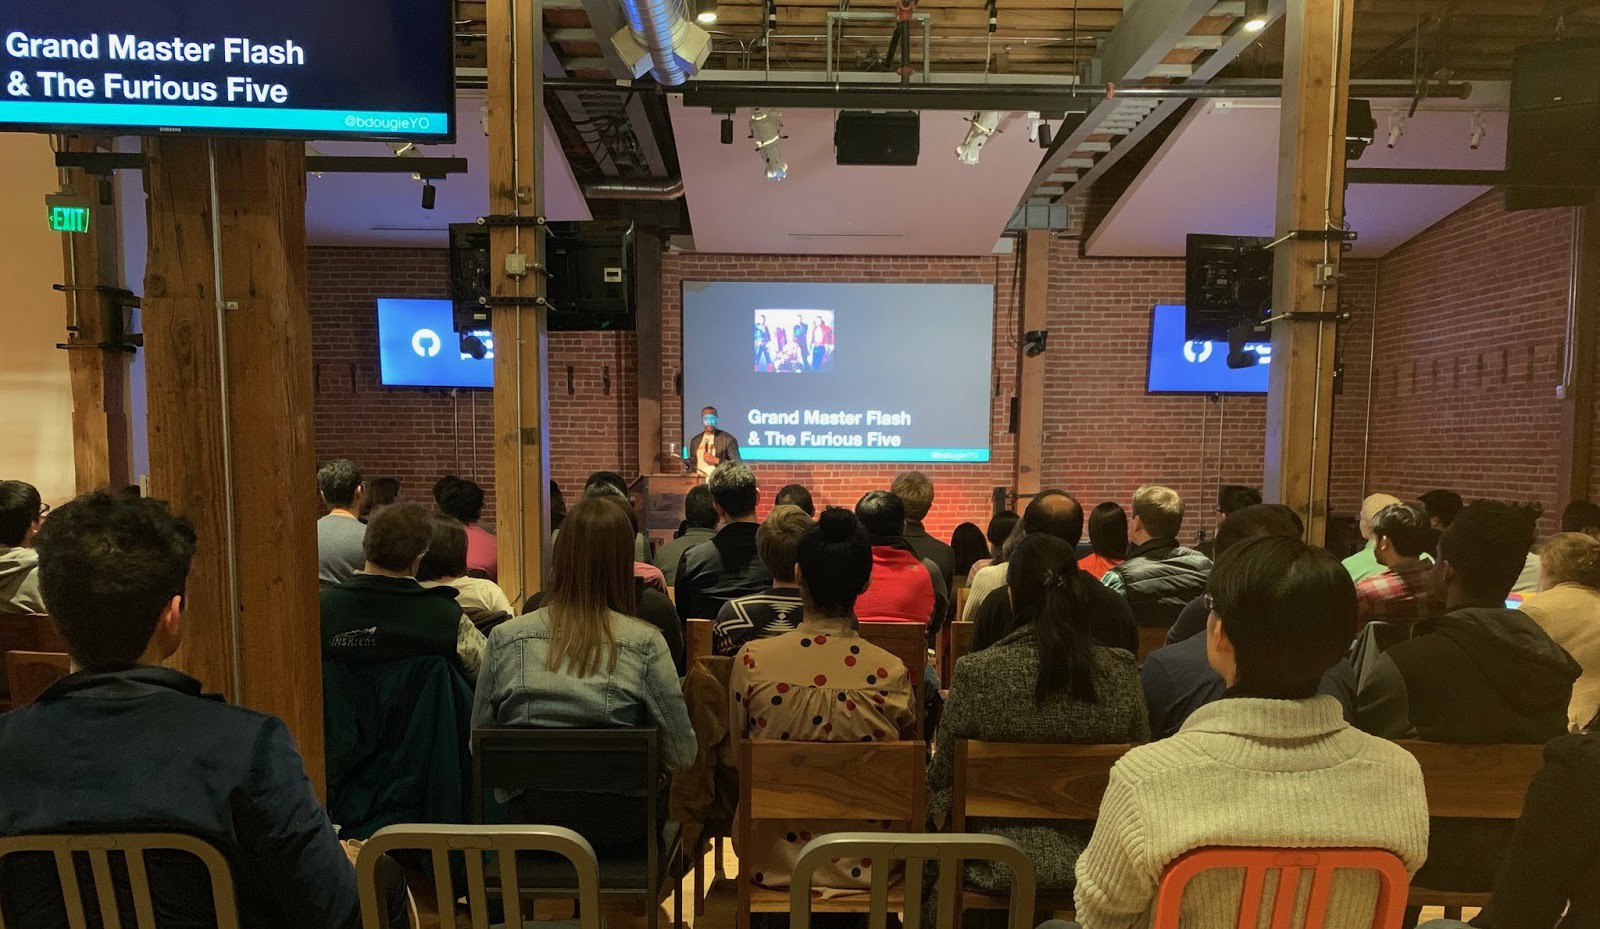 #DevStories @ GitHub HQ, and Officially Oversubscribed Crowdfund!